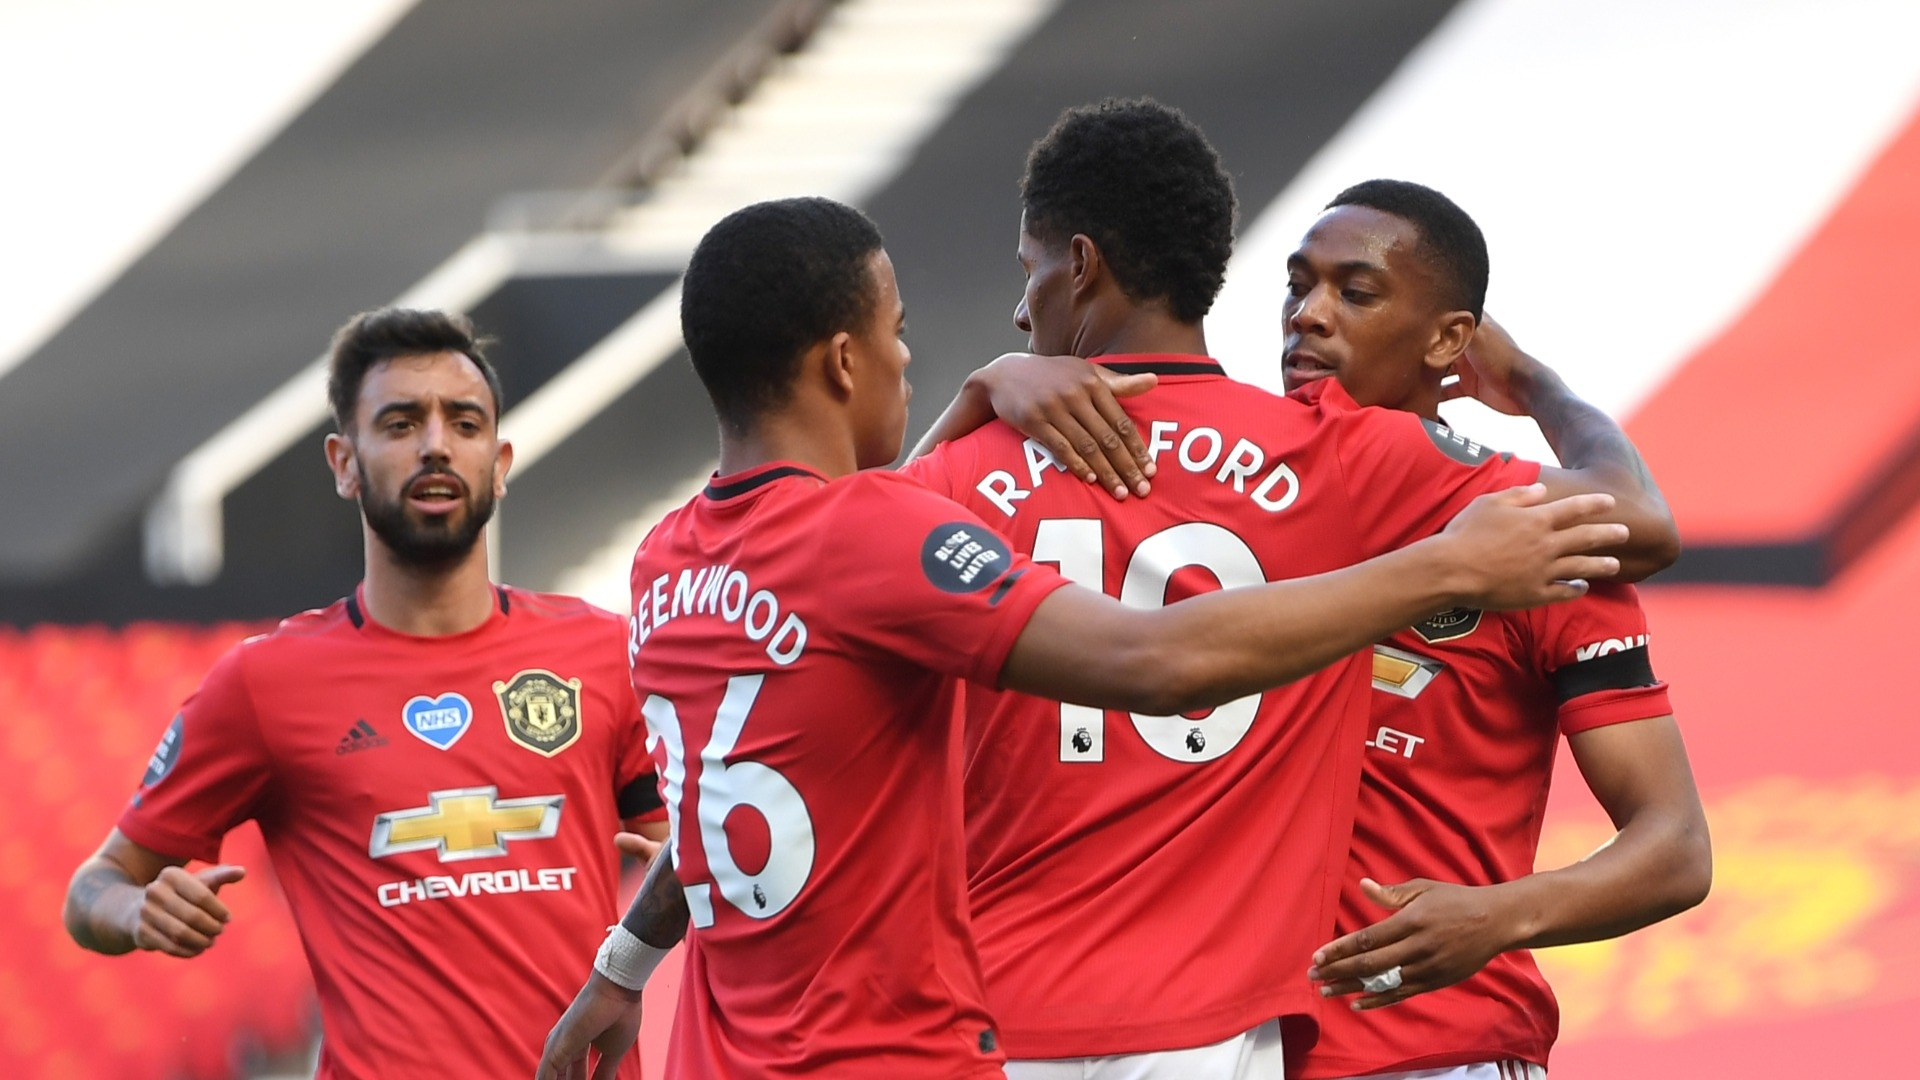 Can this Manchester United squad challenge for title?